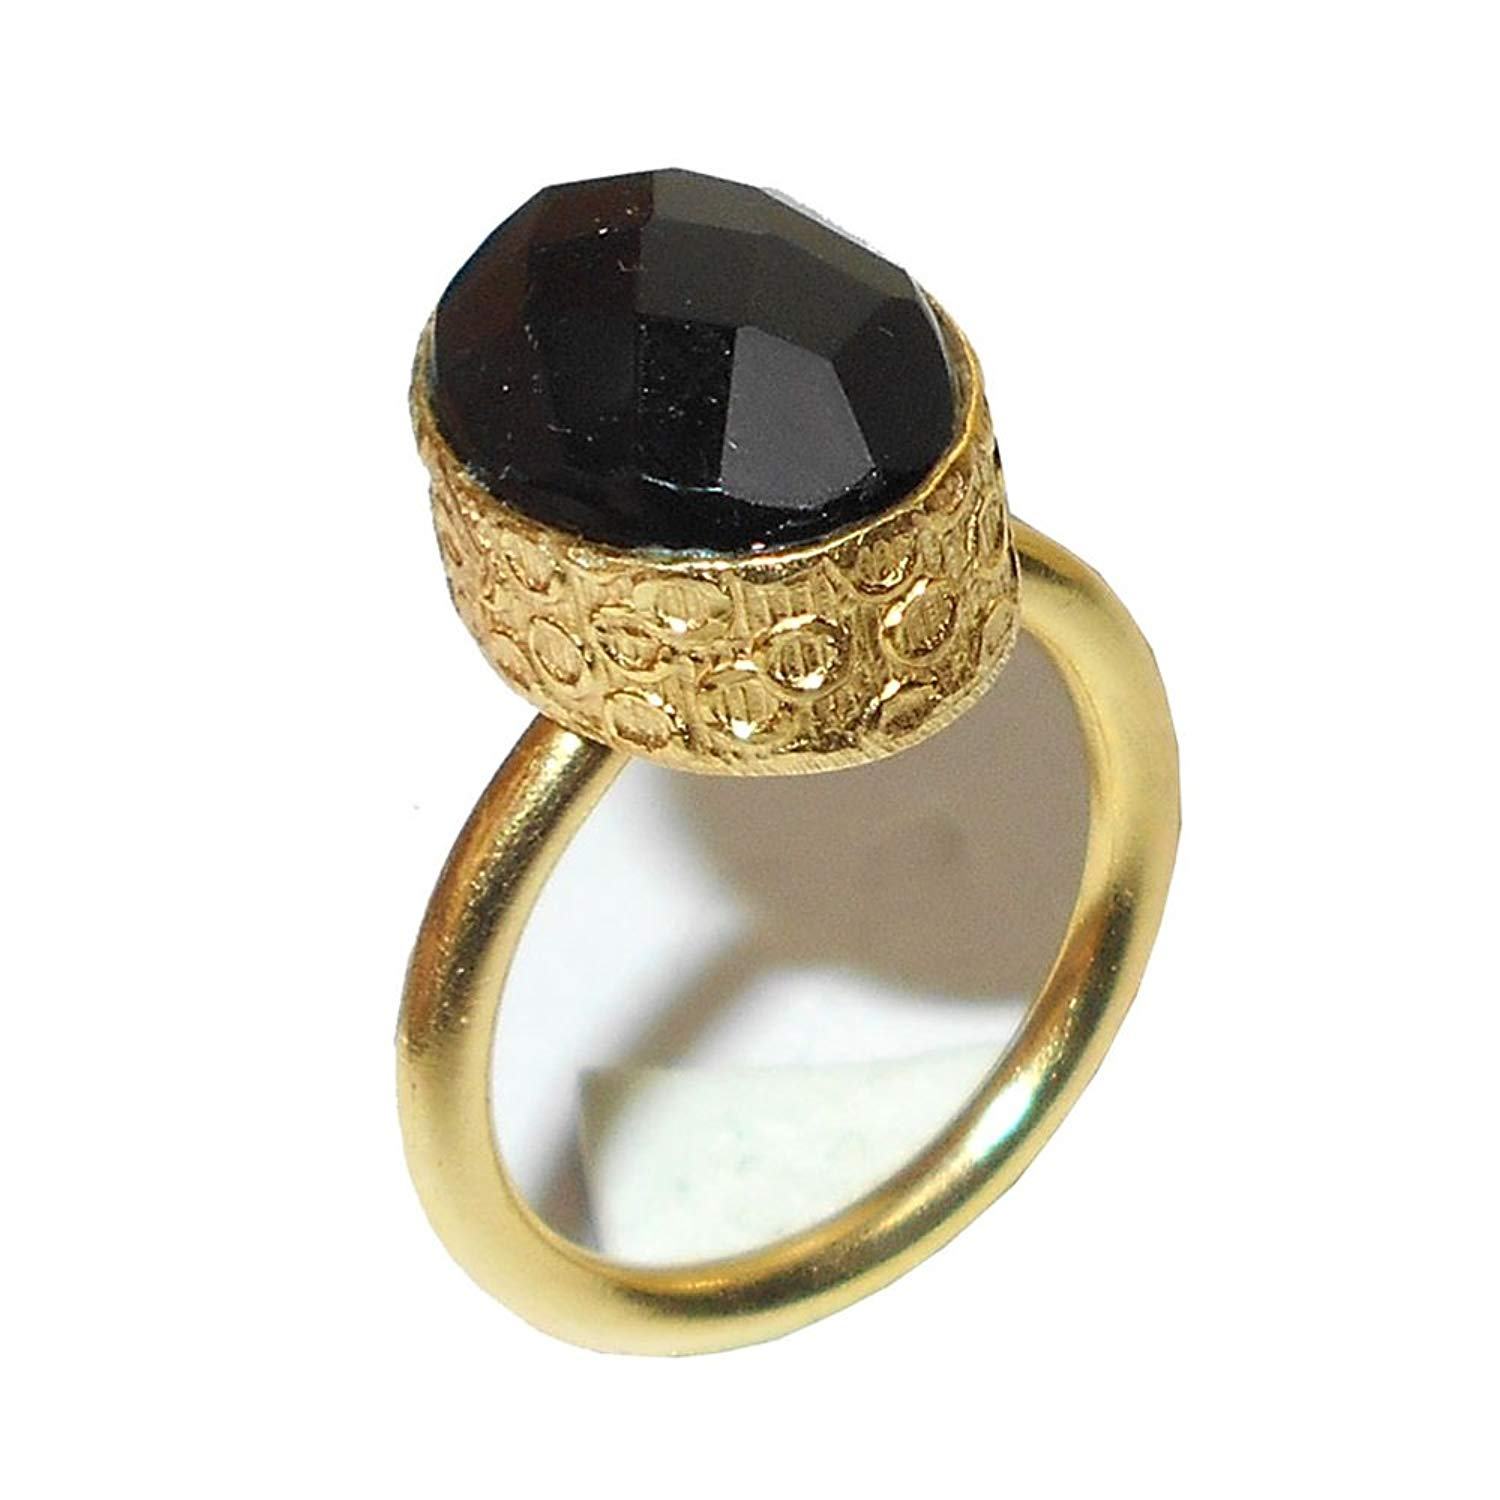 6518b8ad3f376 Cheap Black Onyx Ring Gold, find Black Onyx Ring Gold deals on line ...